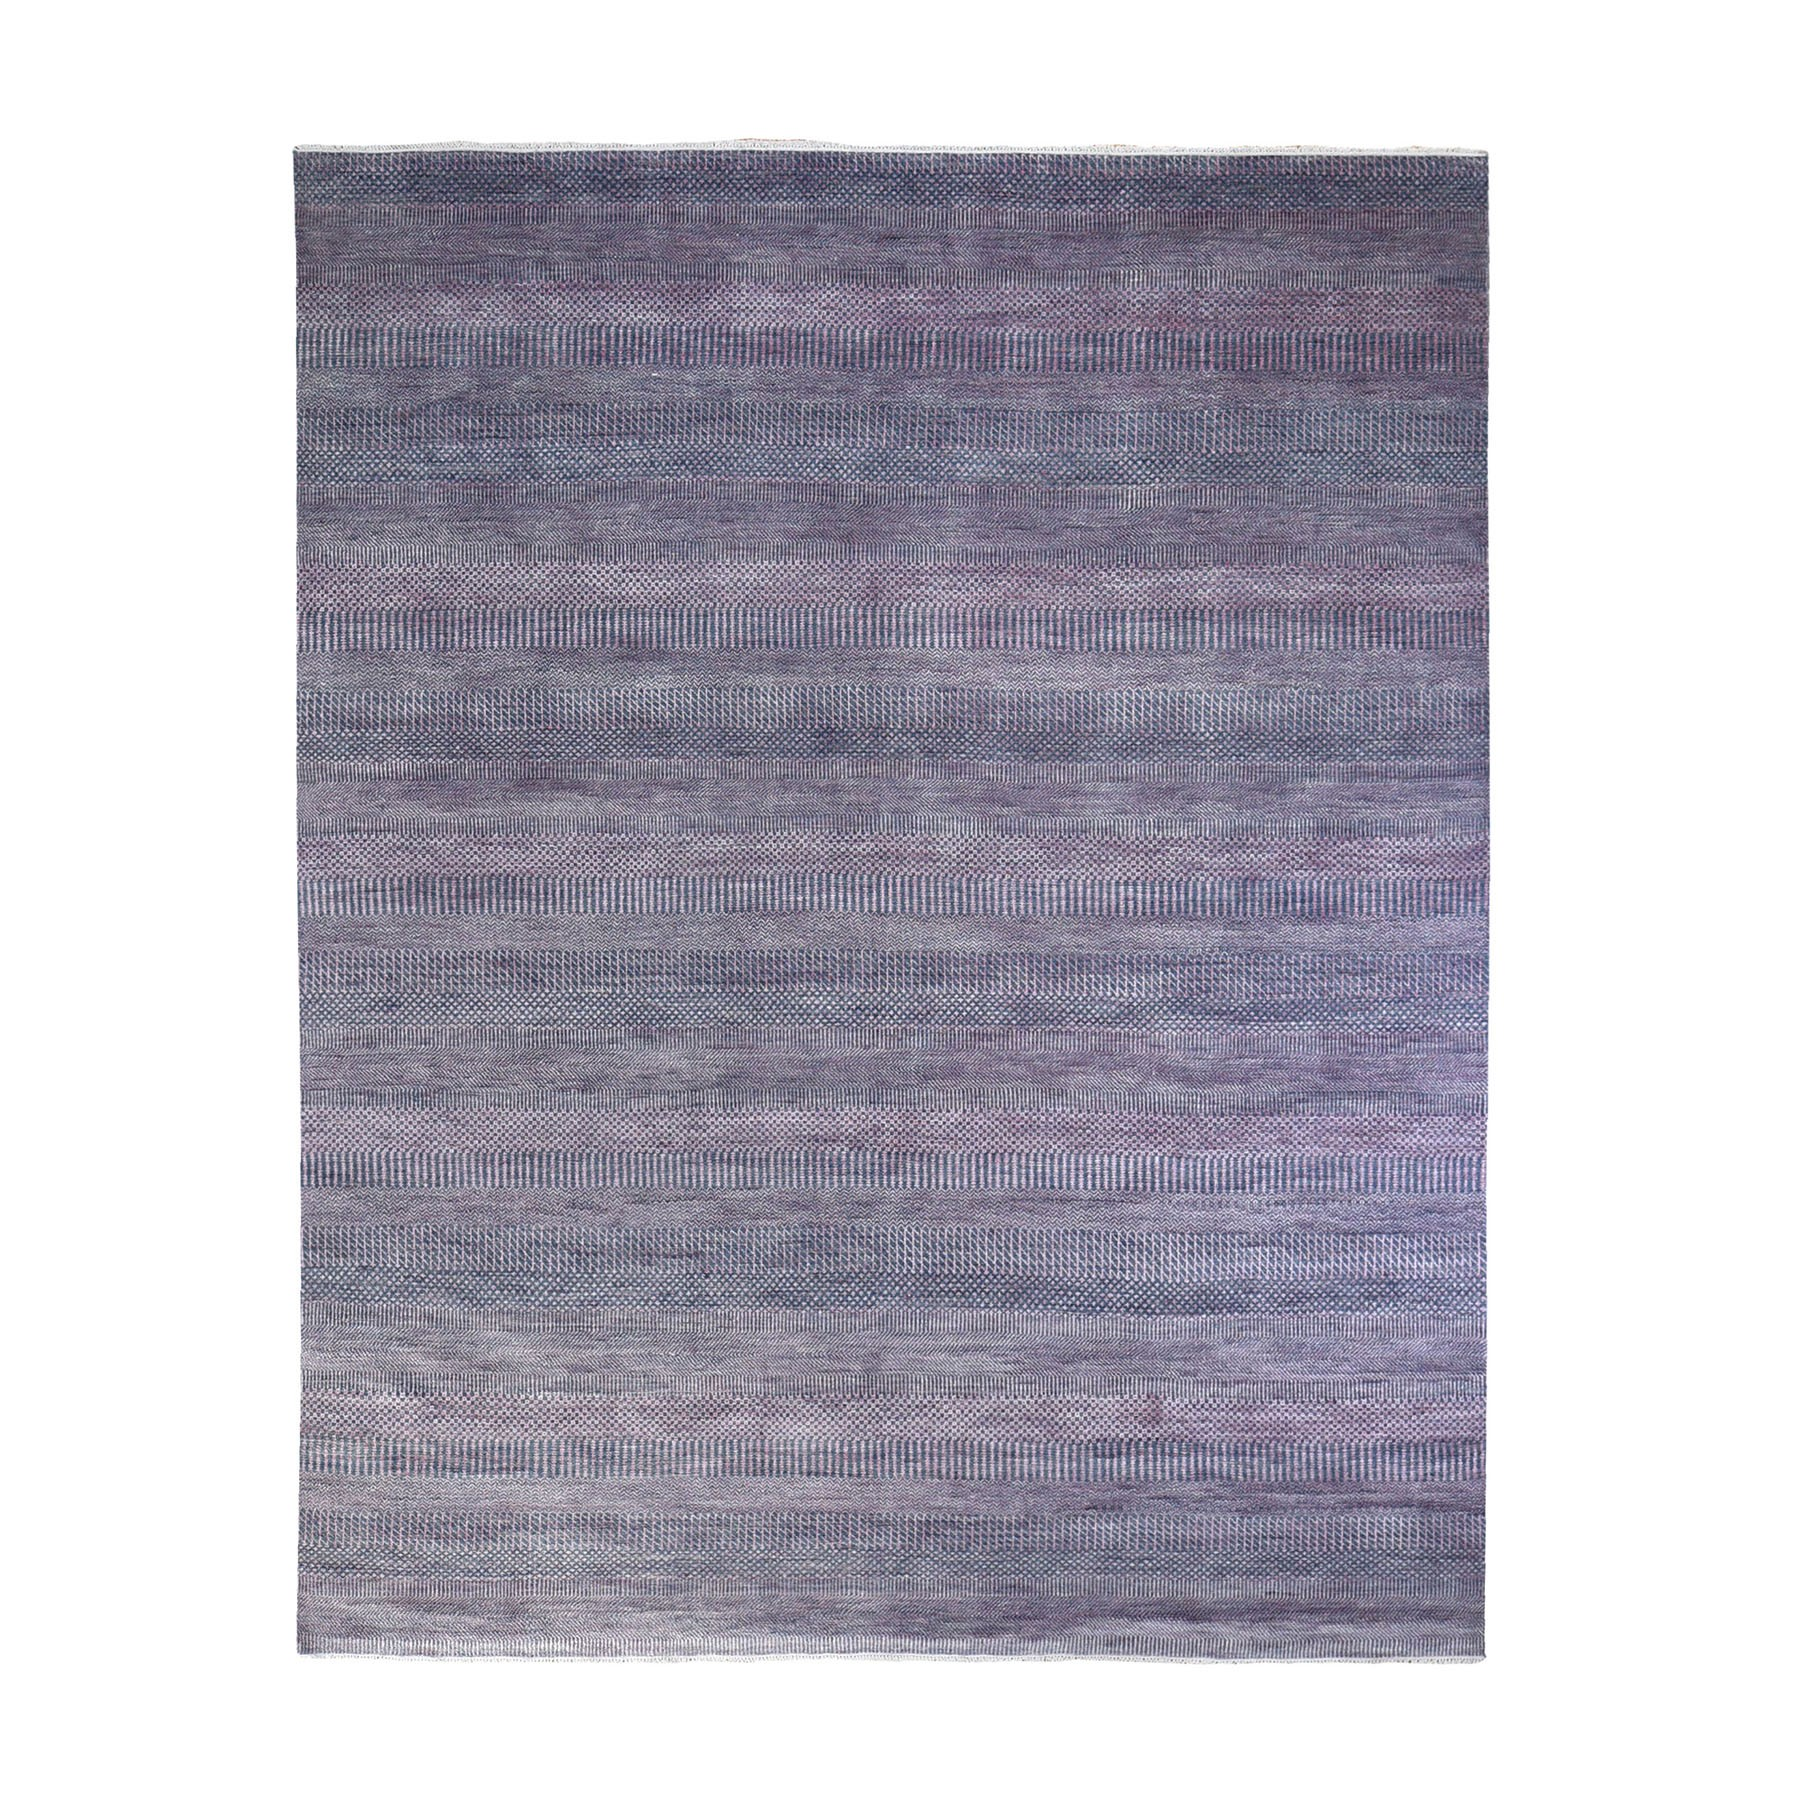 8'x10' Purple with Touches of Pink Grass Design Wool and Silk Hand Woven Oriental Rug